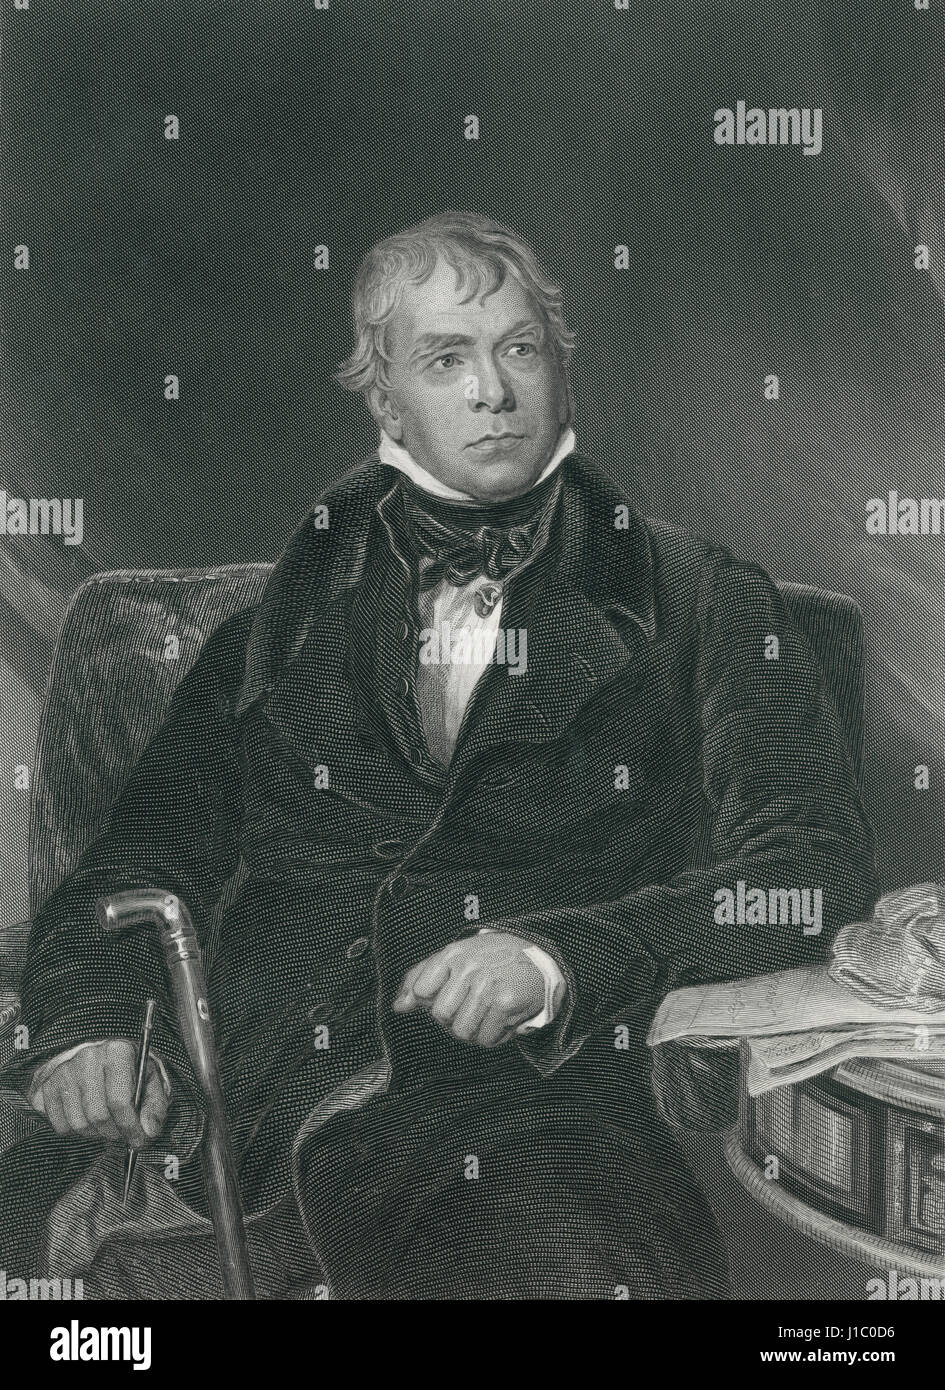 Sir Walter Scott (1771-1832), Scottish Historical Novelist, Playwright and Poet, Portrait, Engraving from Original - Stock Image